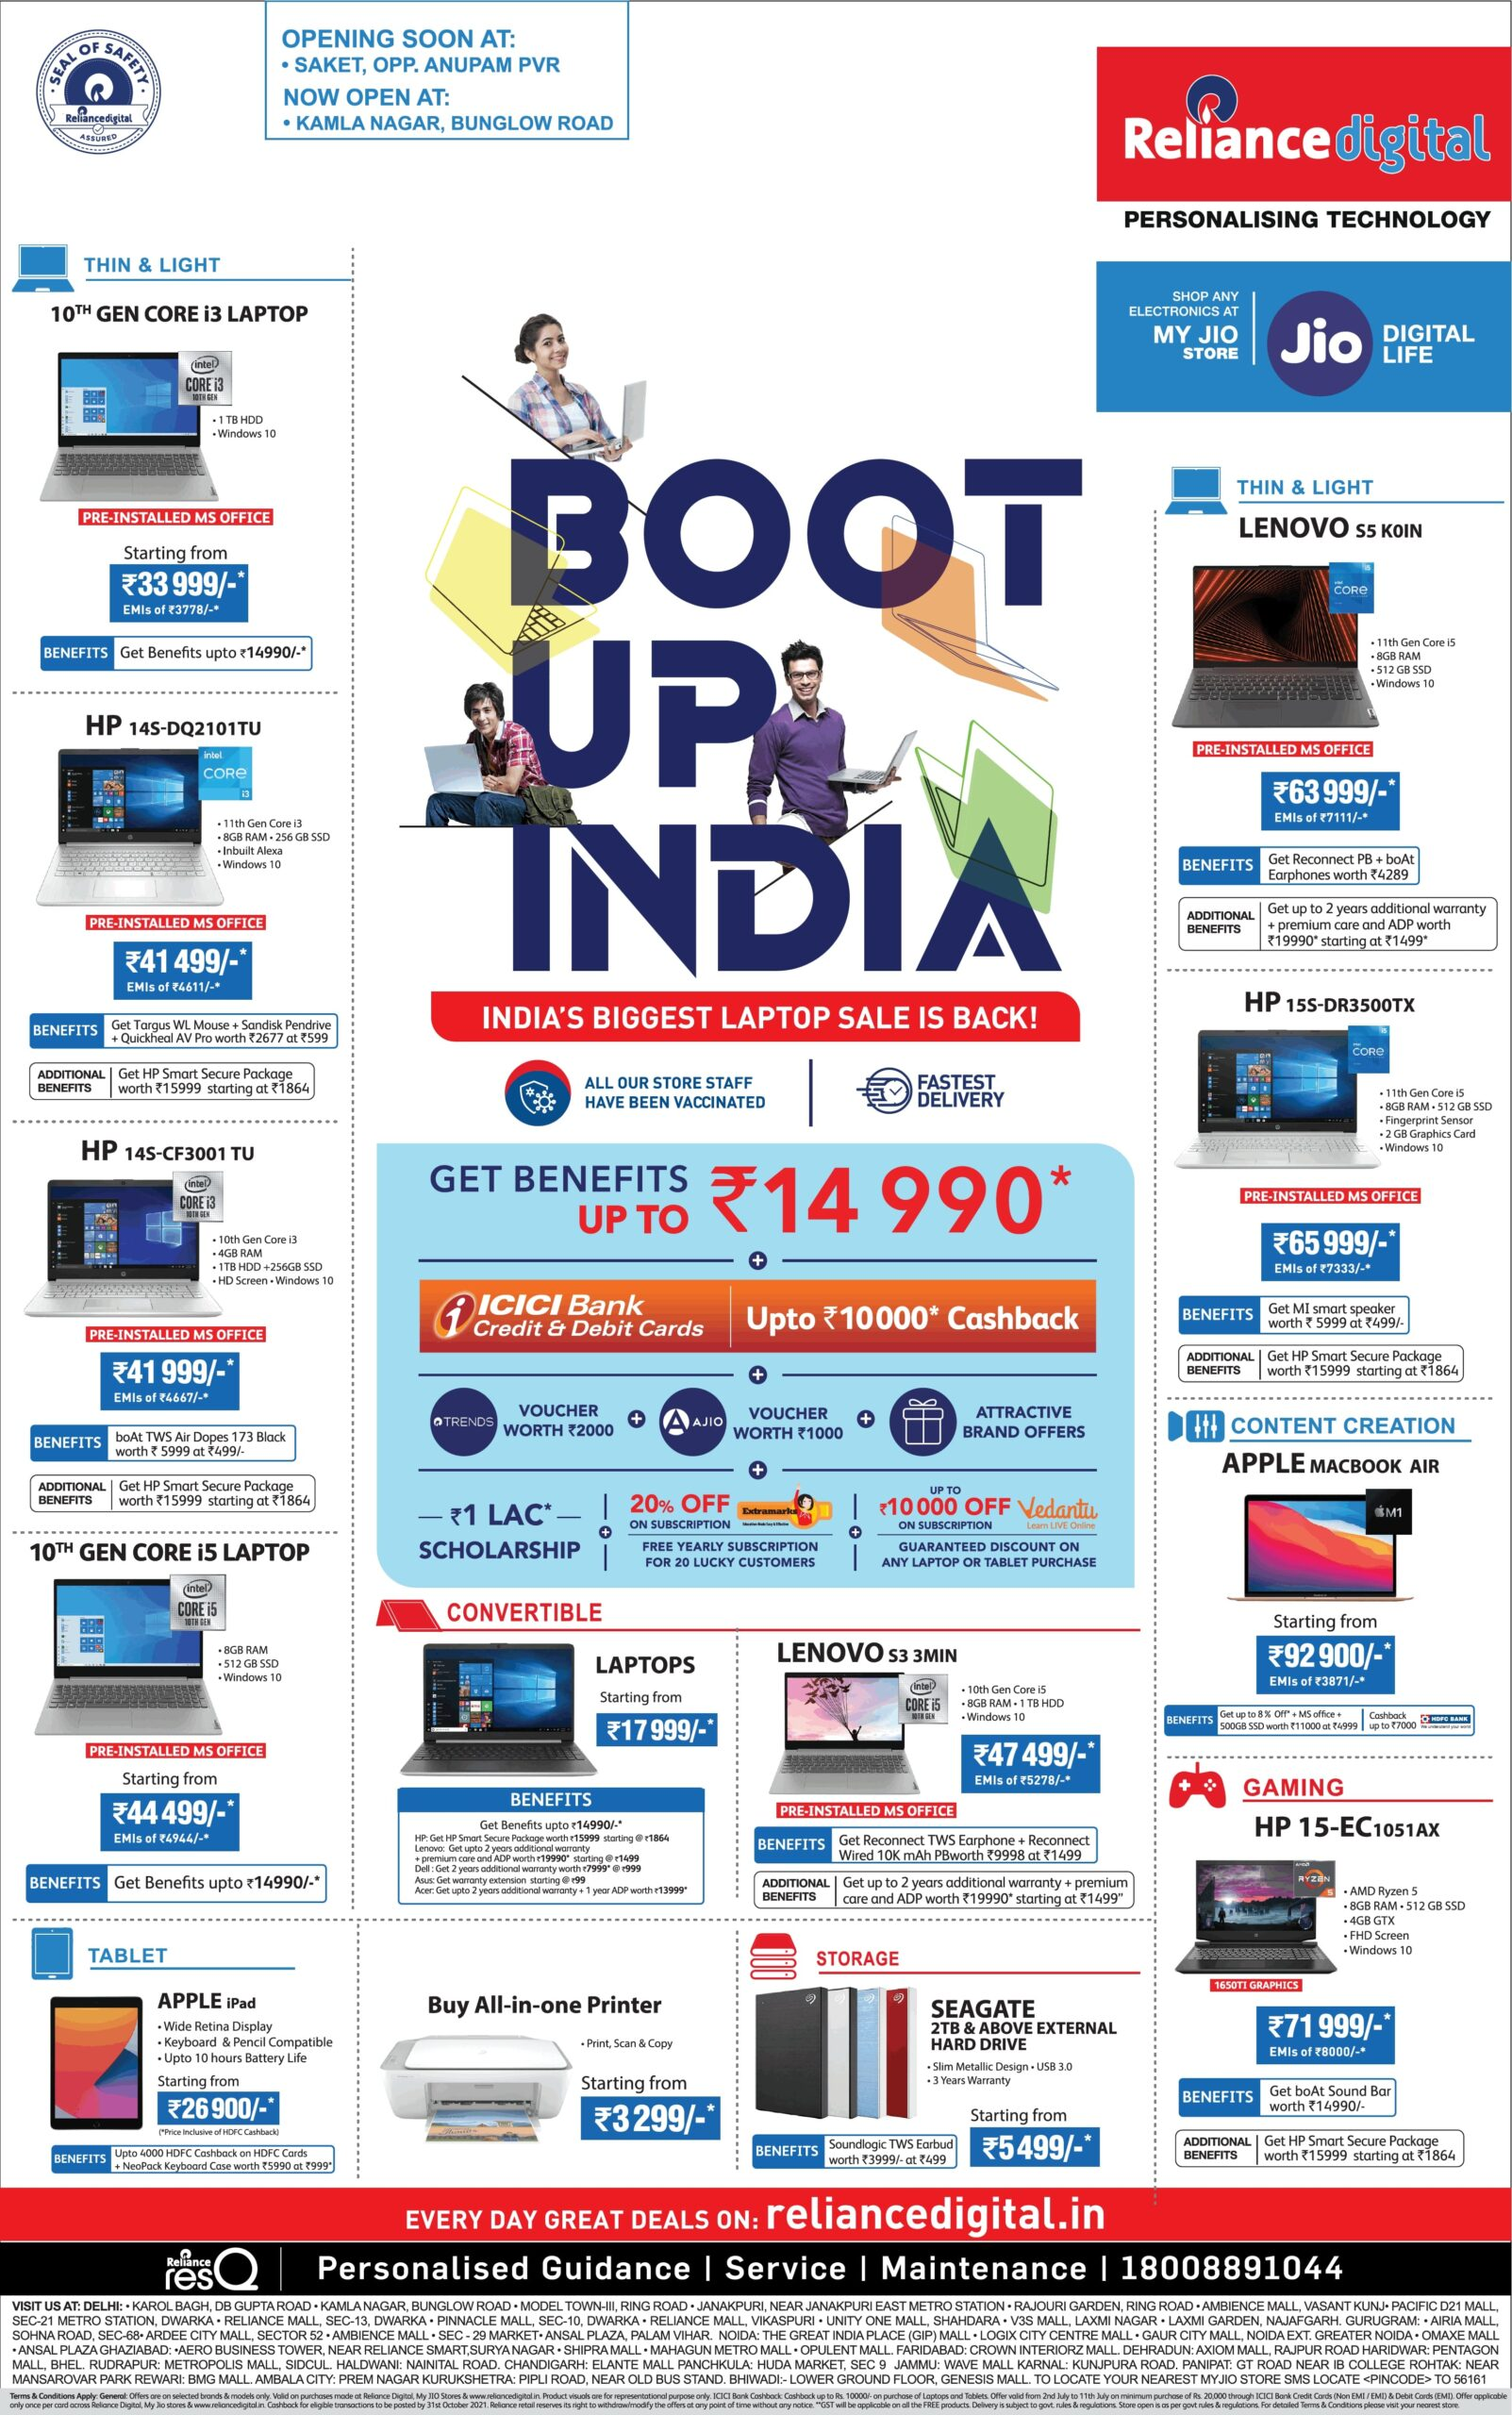 reliance-digital-boot-up-india-indias-biggest-laptop-sale-is-back-ad-times-of-india-delhi-03-07-2021